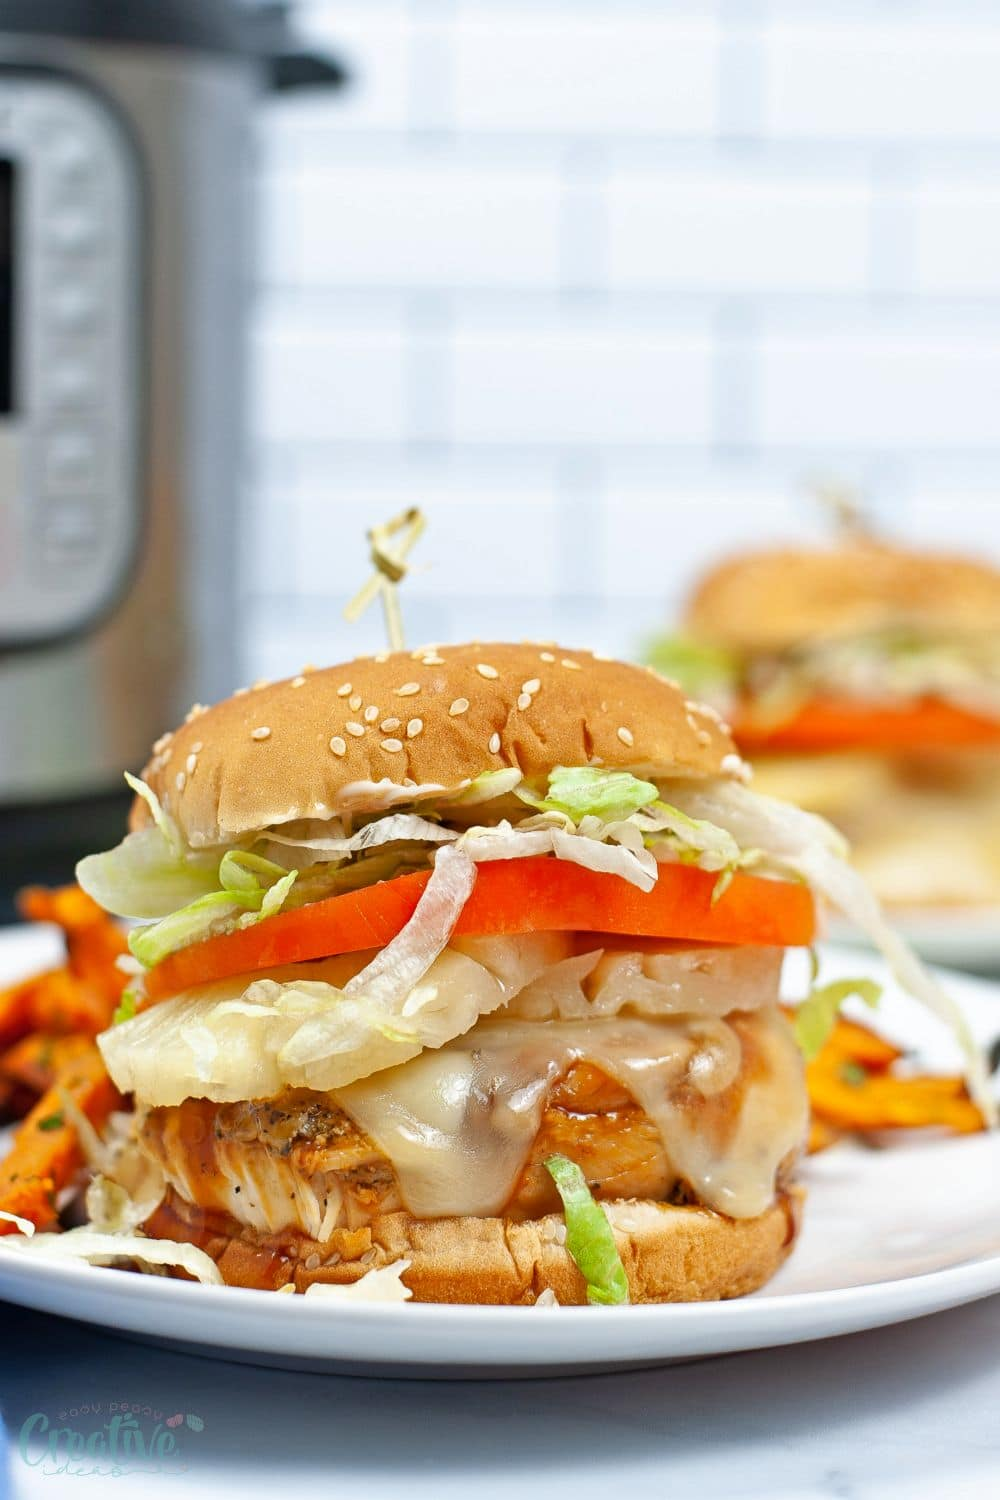 Close up image of Instant Pot chicken teriyaki served in a burger bun with lettuce and cheese